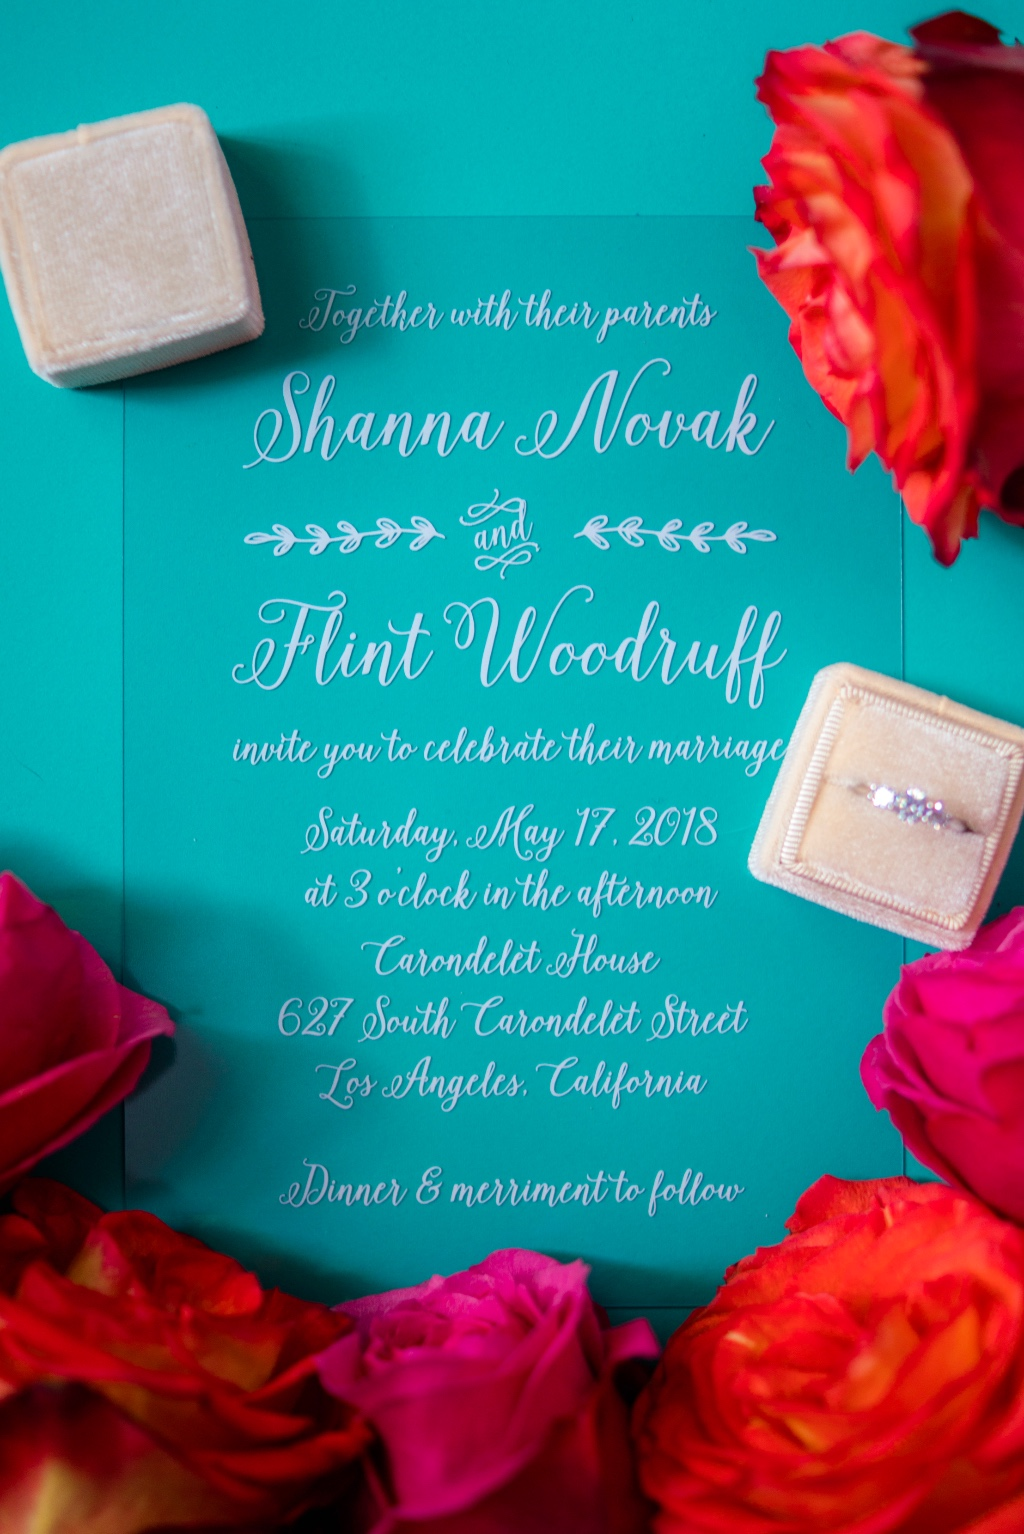 Clear cardstock printed with bright white ink make for innovative and creative wedding invitations sure to stand out!